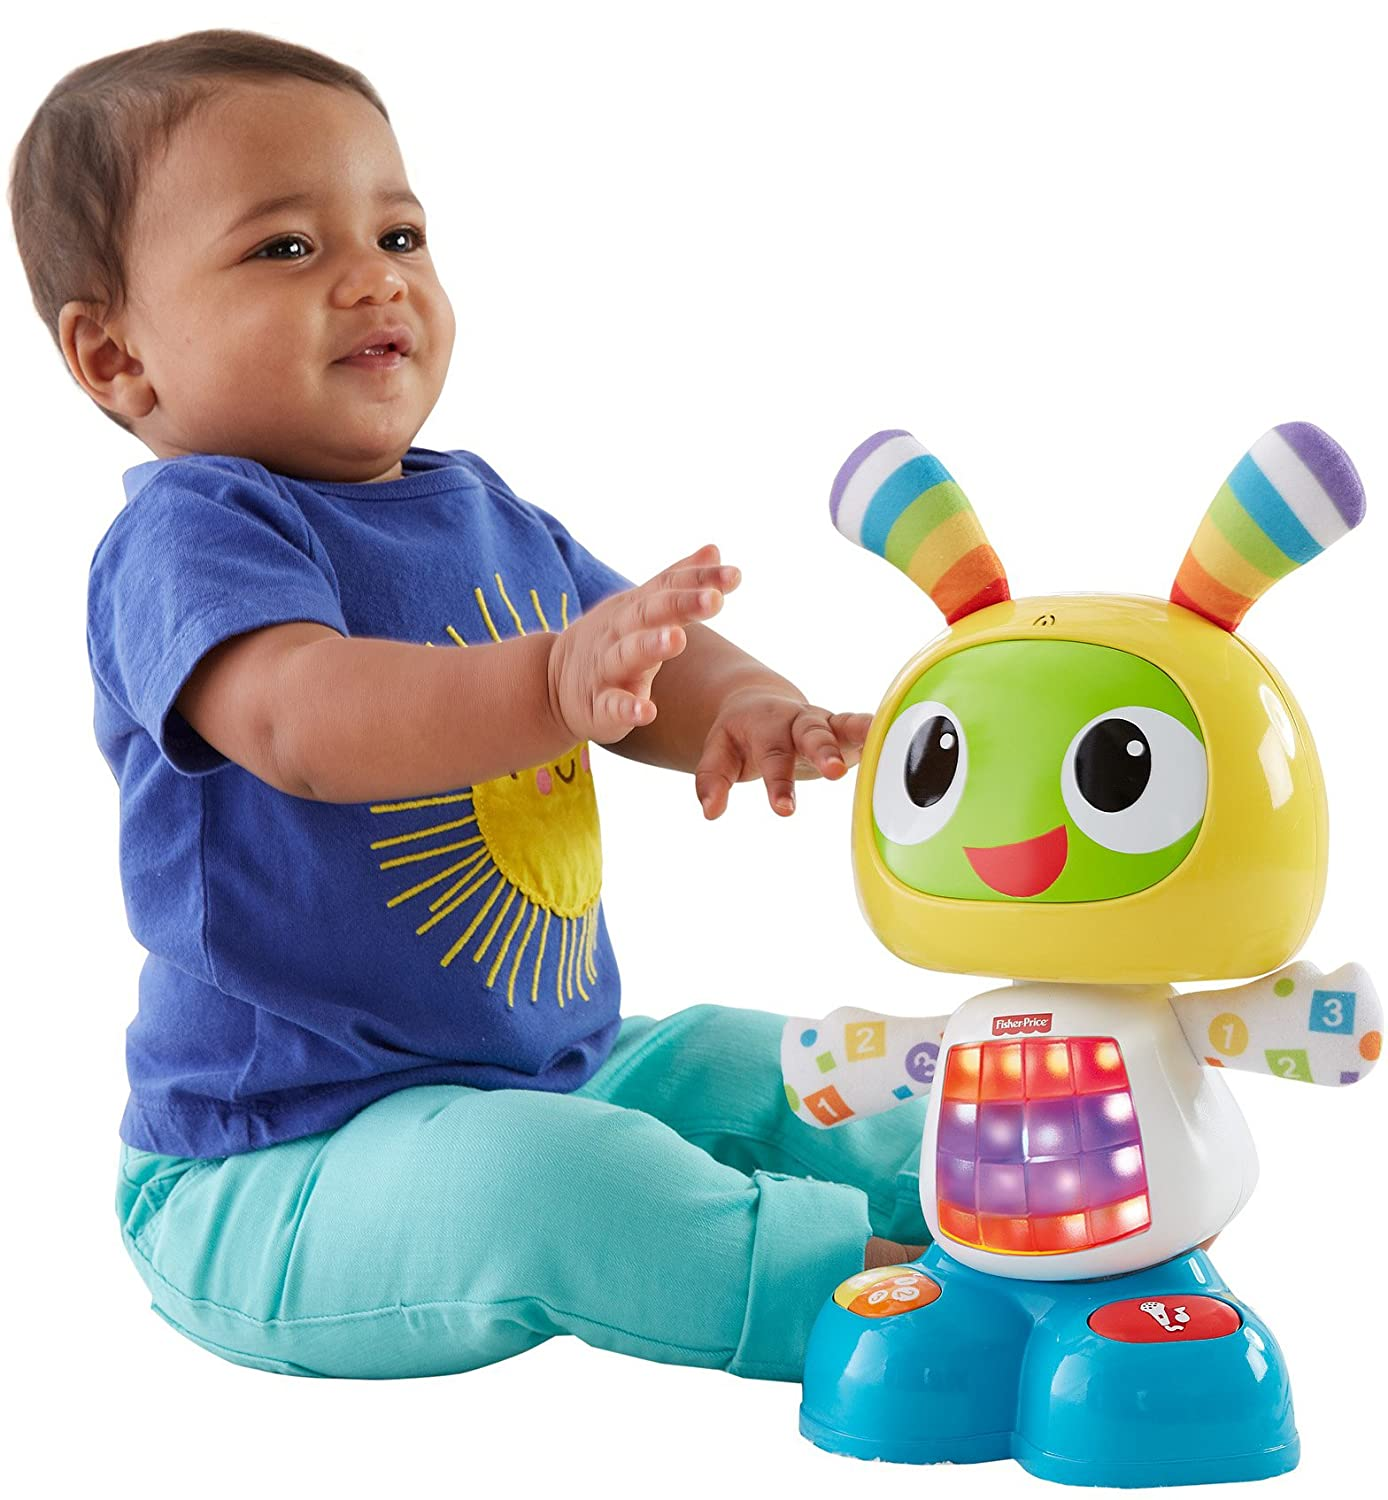 Toys For 0 2 Years Old : Awesome musical toys for year olds in